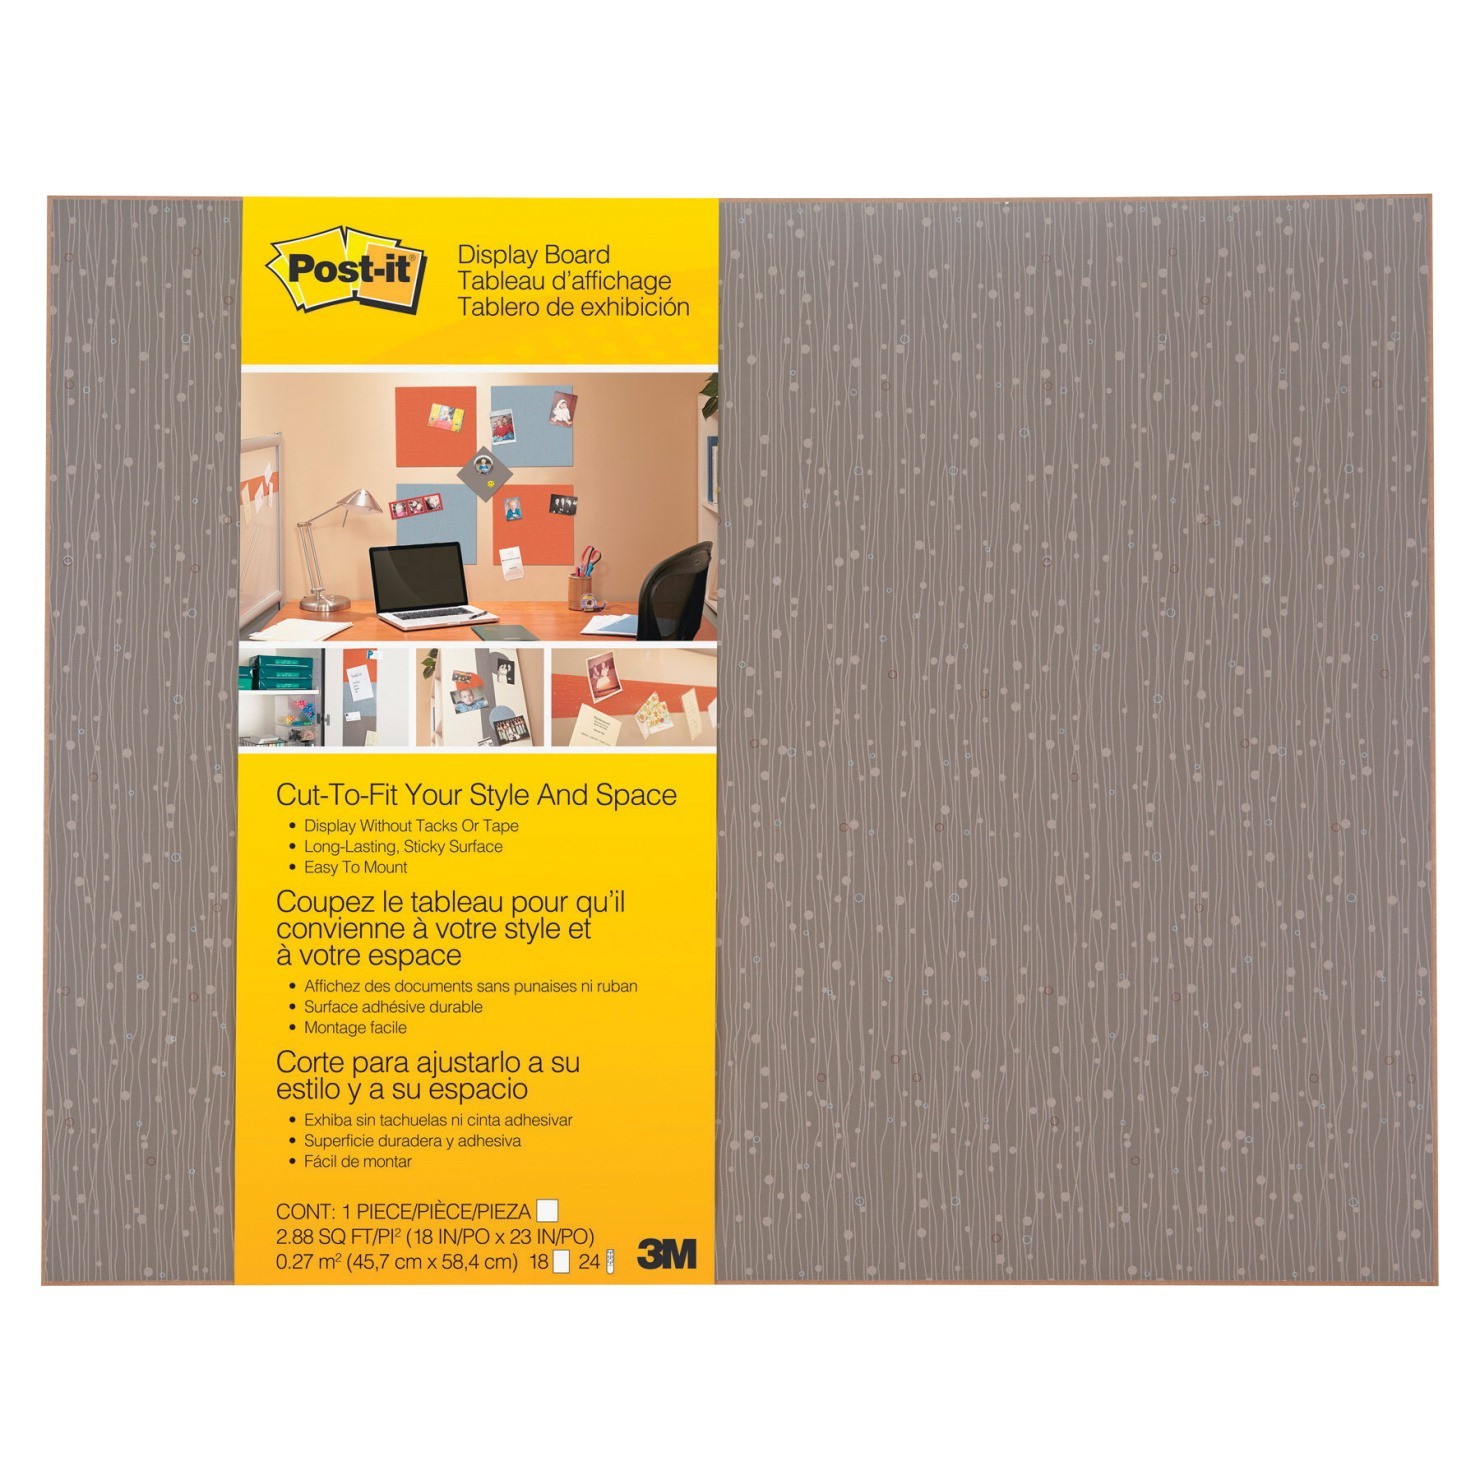 Post-It Cut-To-Fit Display Board, 18 X 23, Mocha